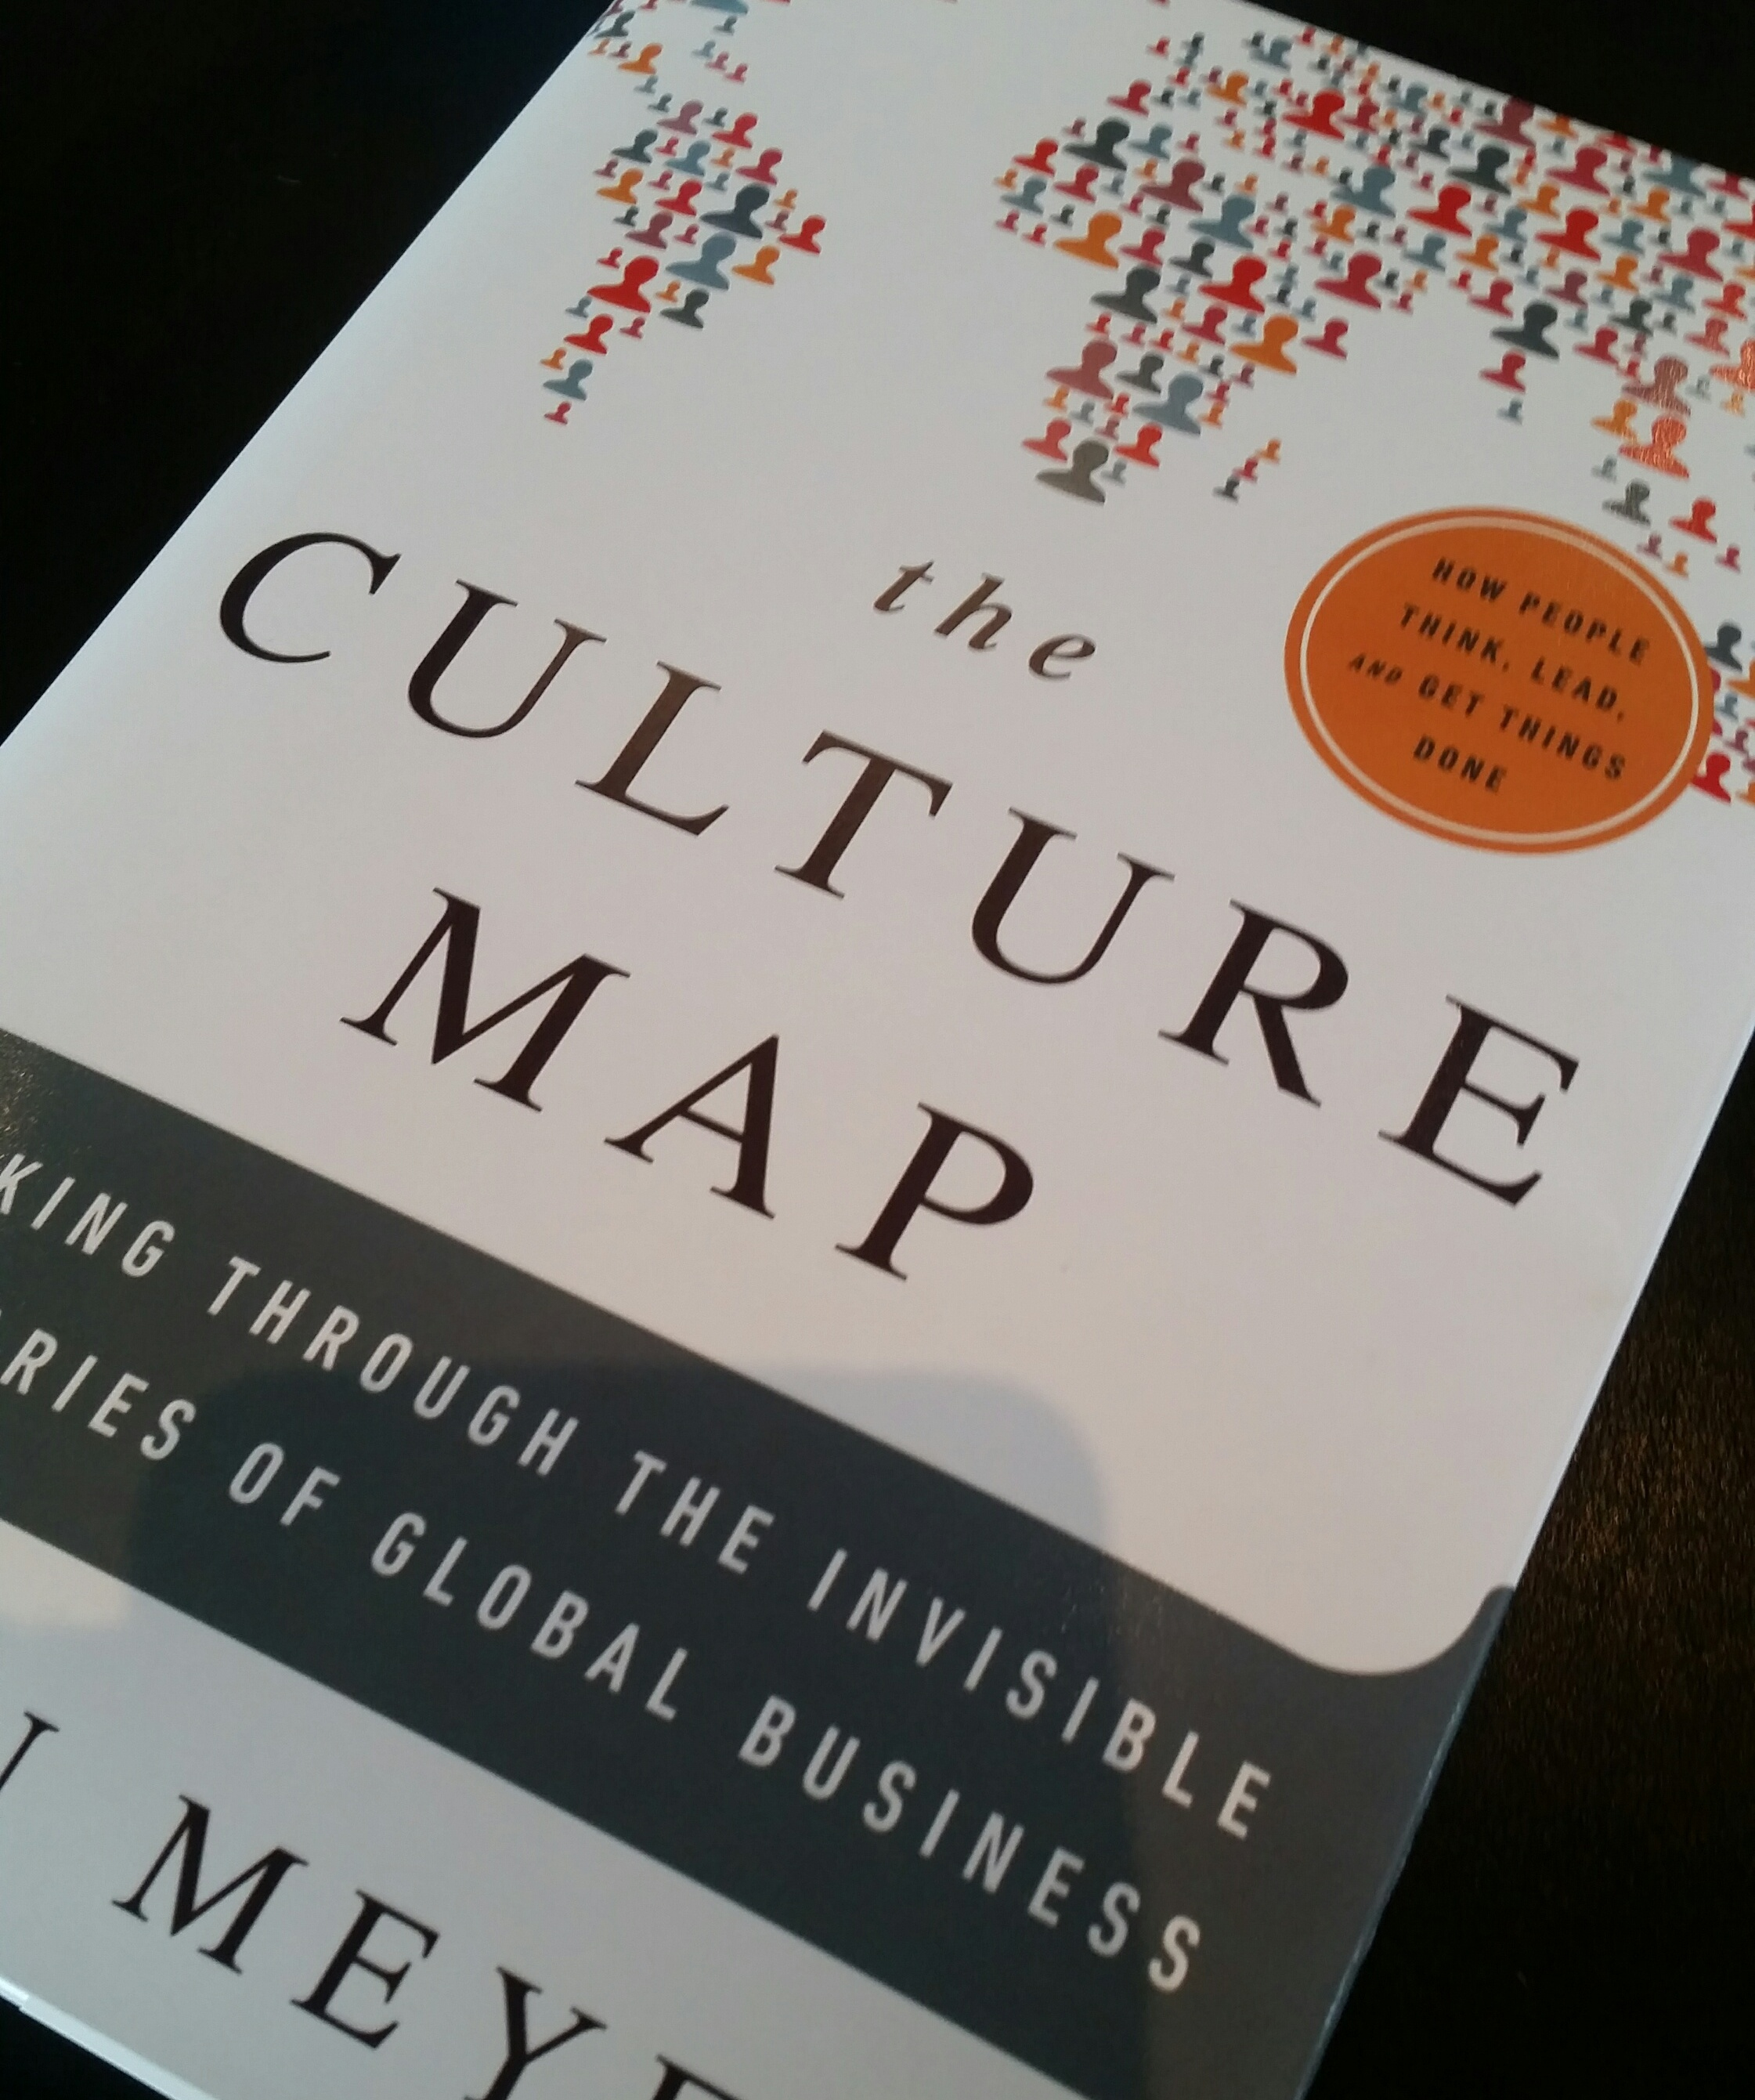 the Culture Map is a book about business culture in different countries which served as the basis for our discussions